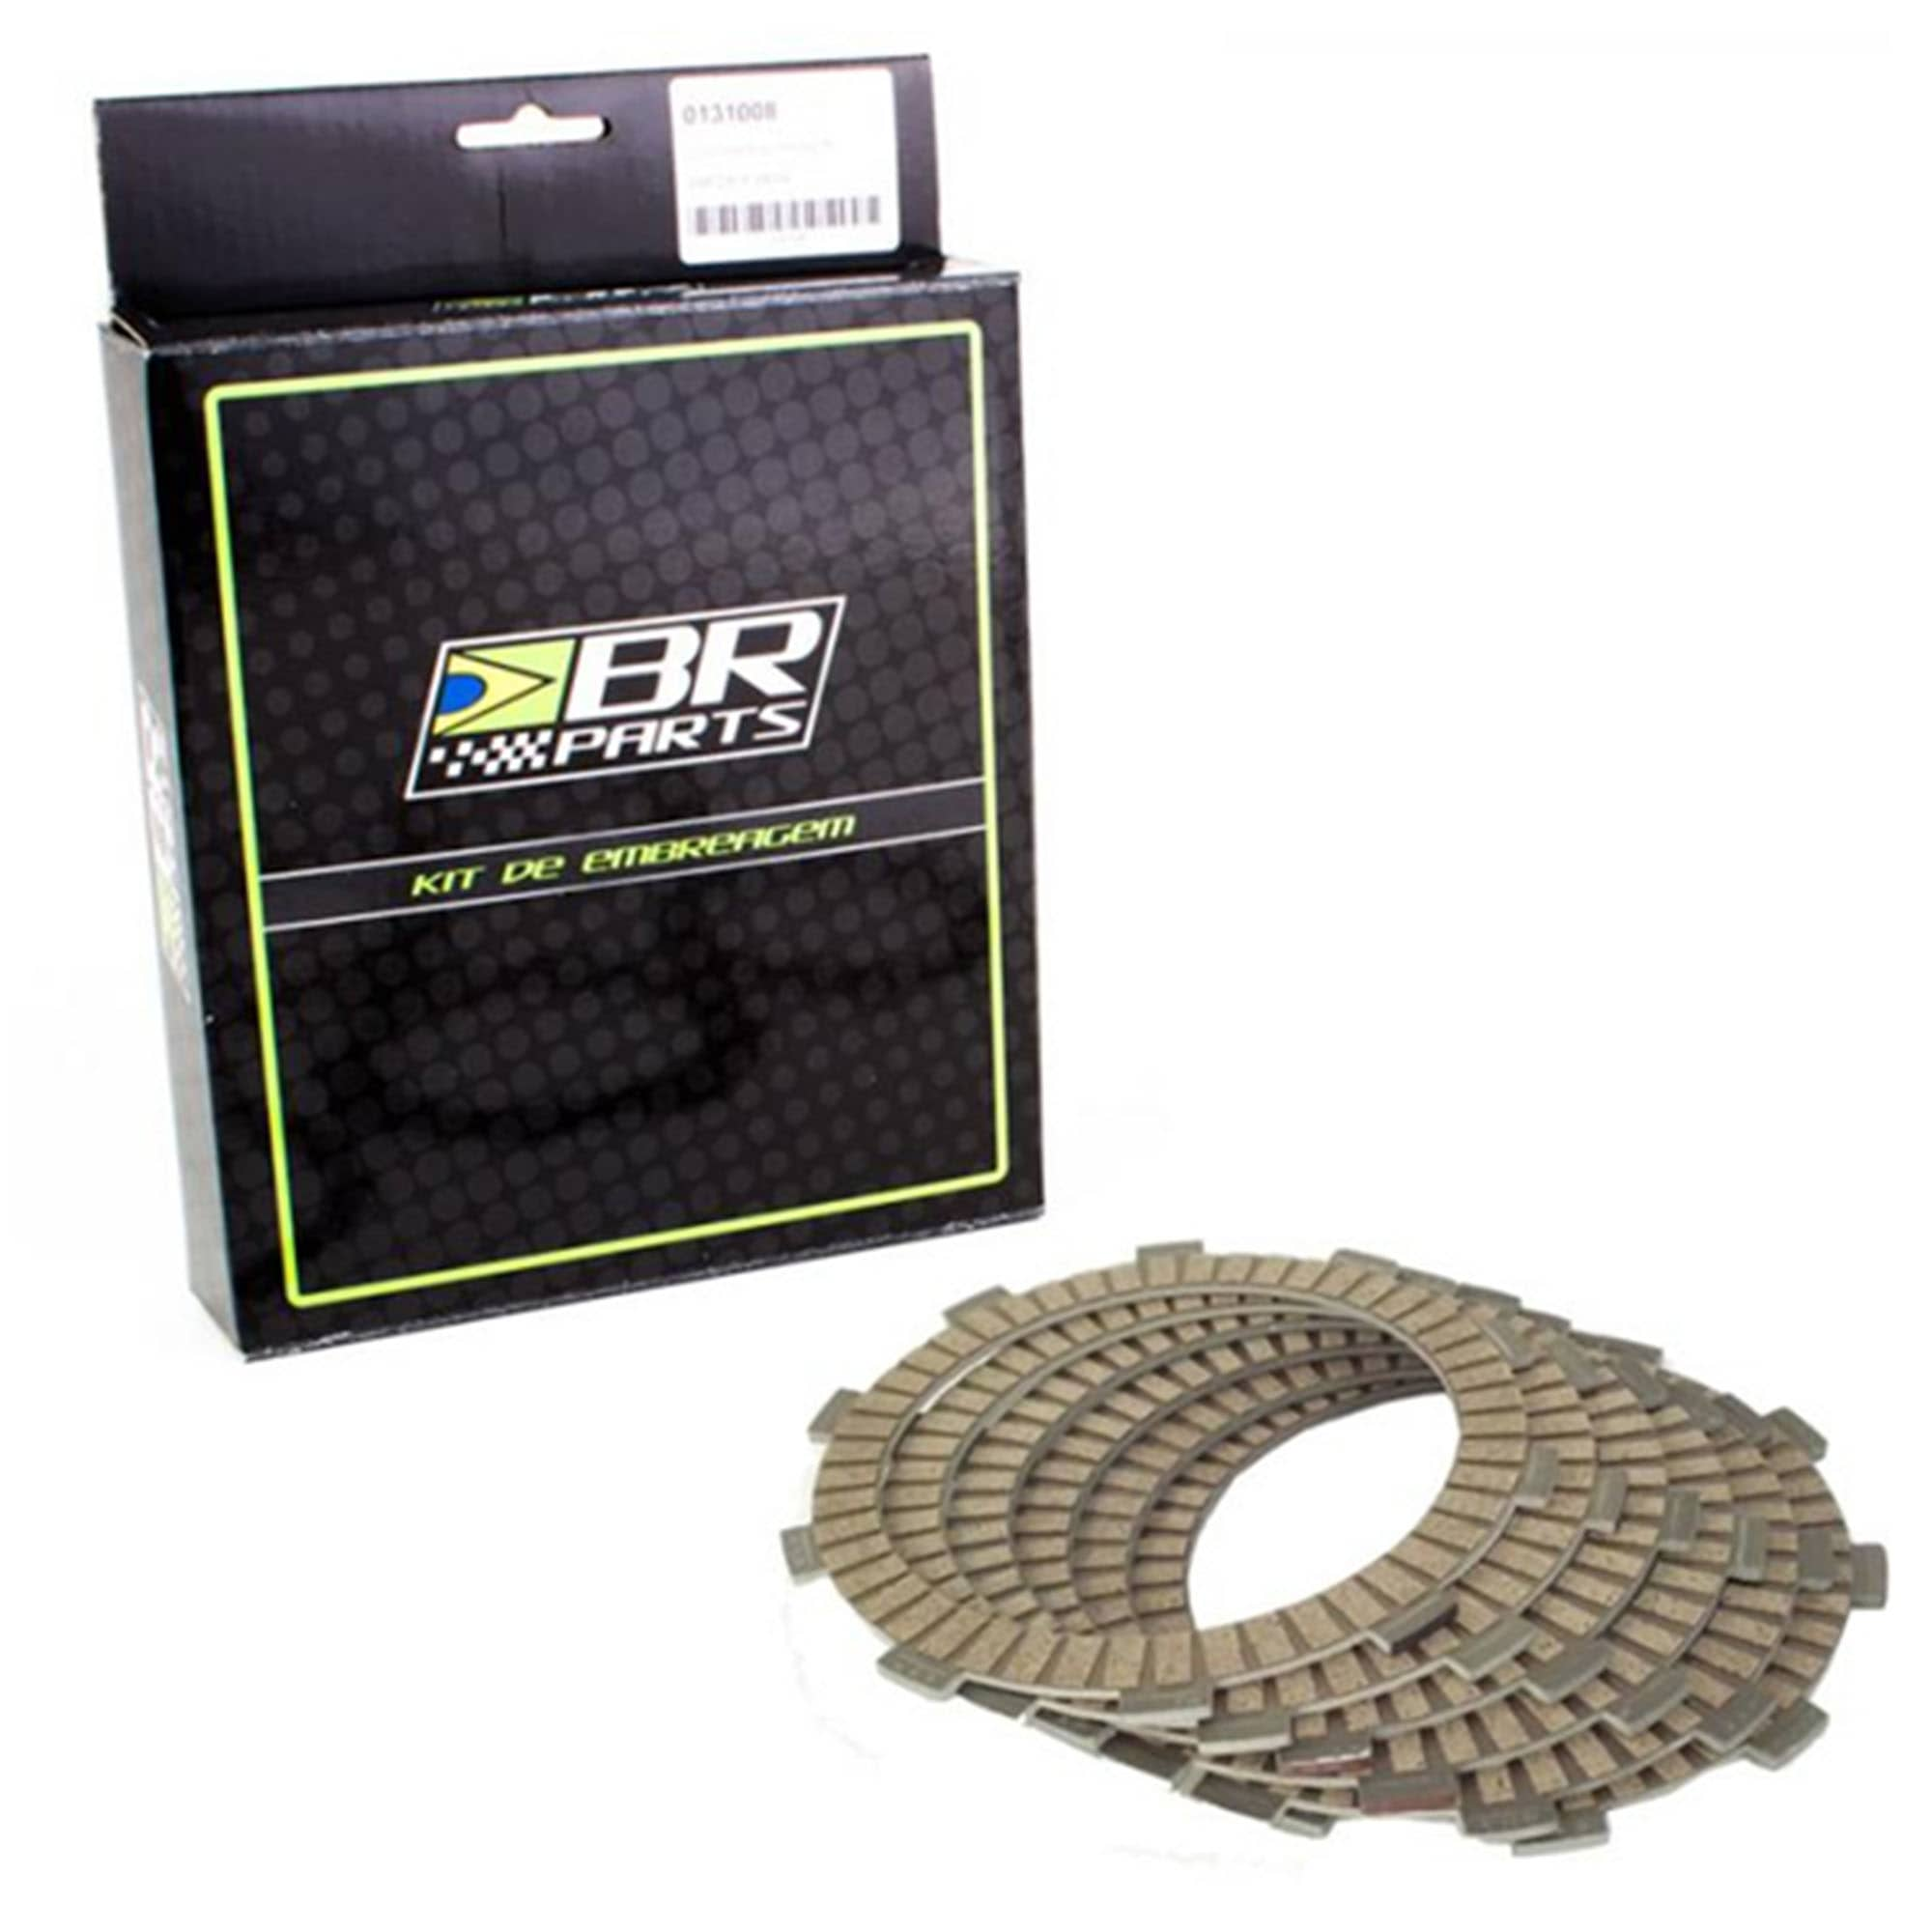 Kit de Disco de Embreagem + Separadores BR Parts CRF 250 08/09 e 11/16  - HP Race Off Road